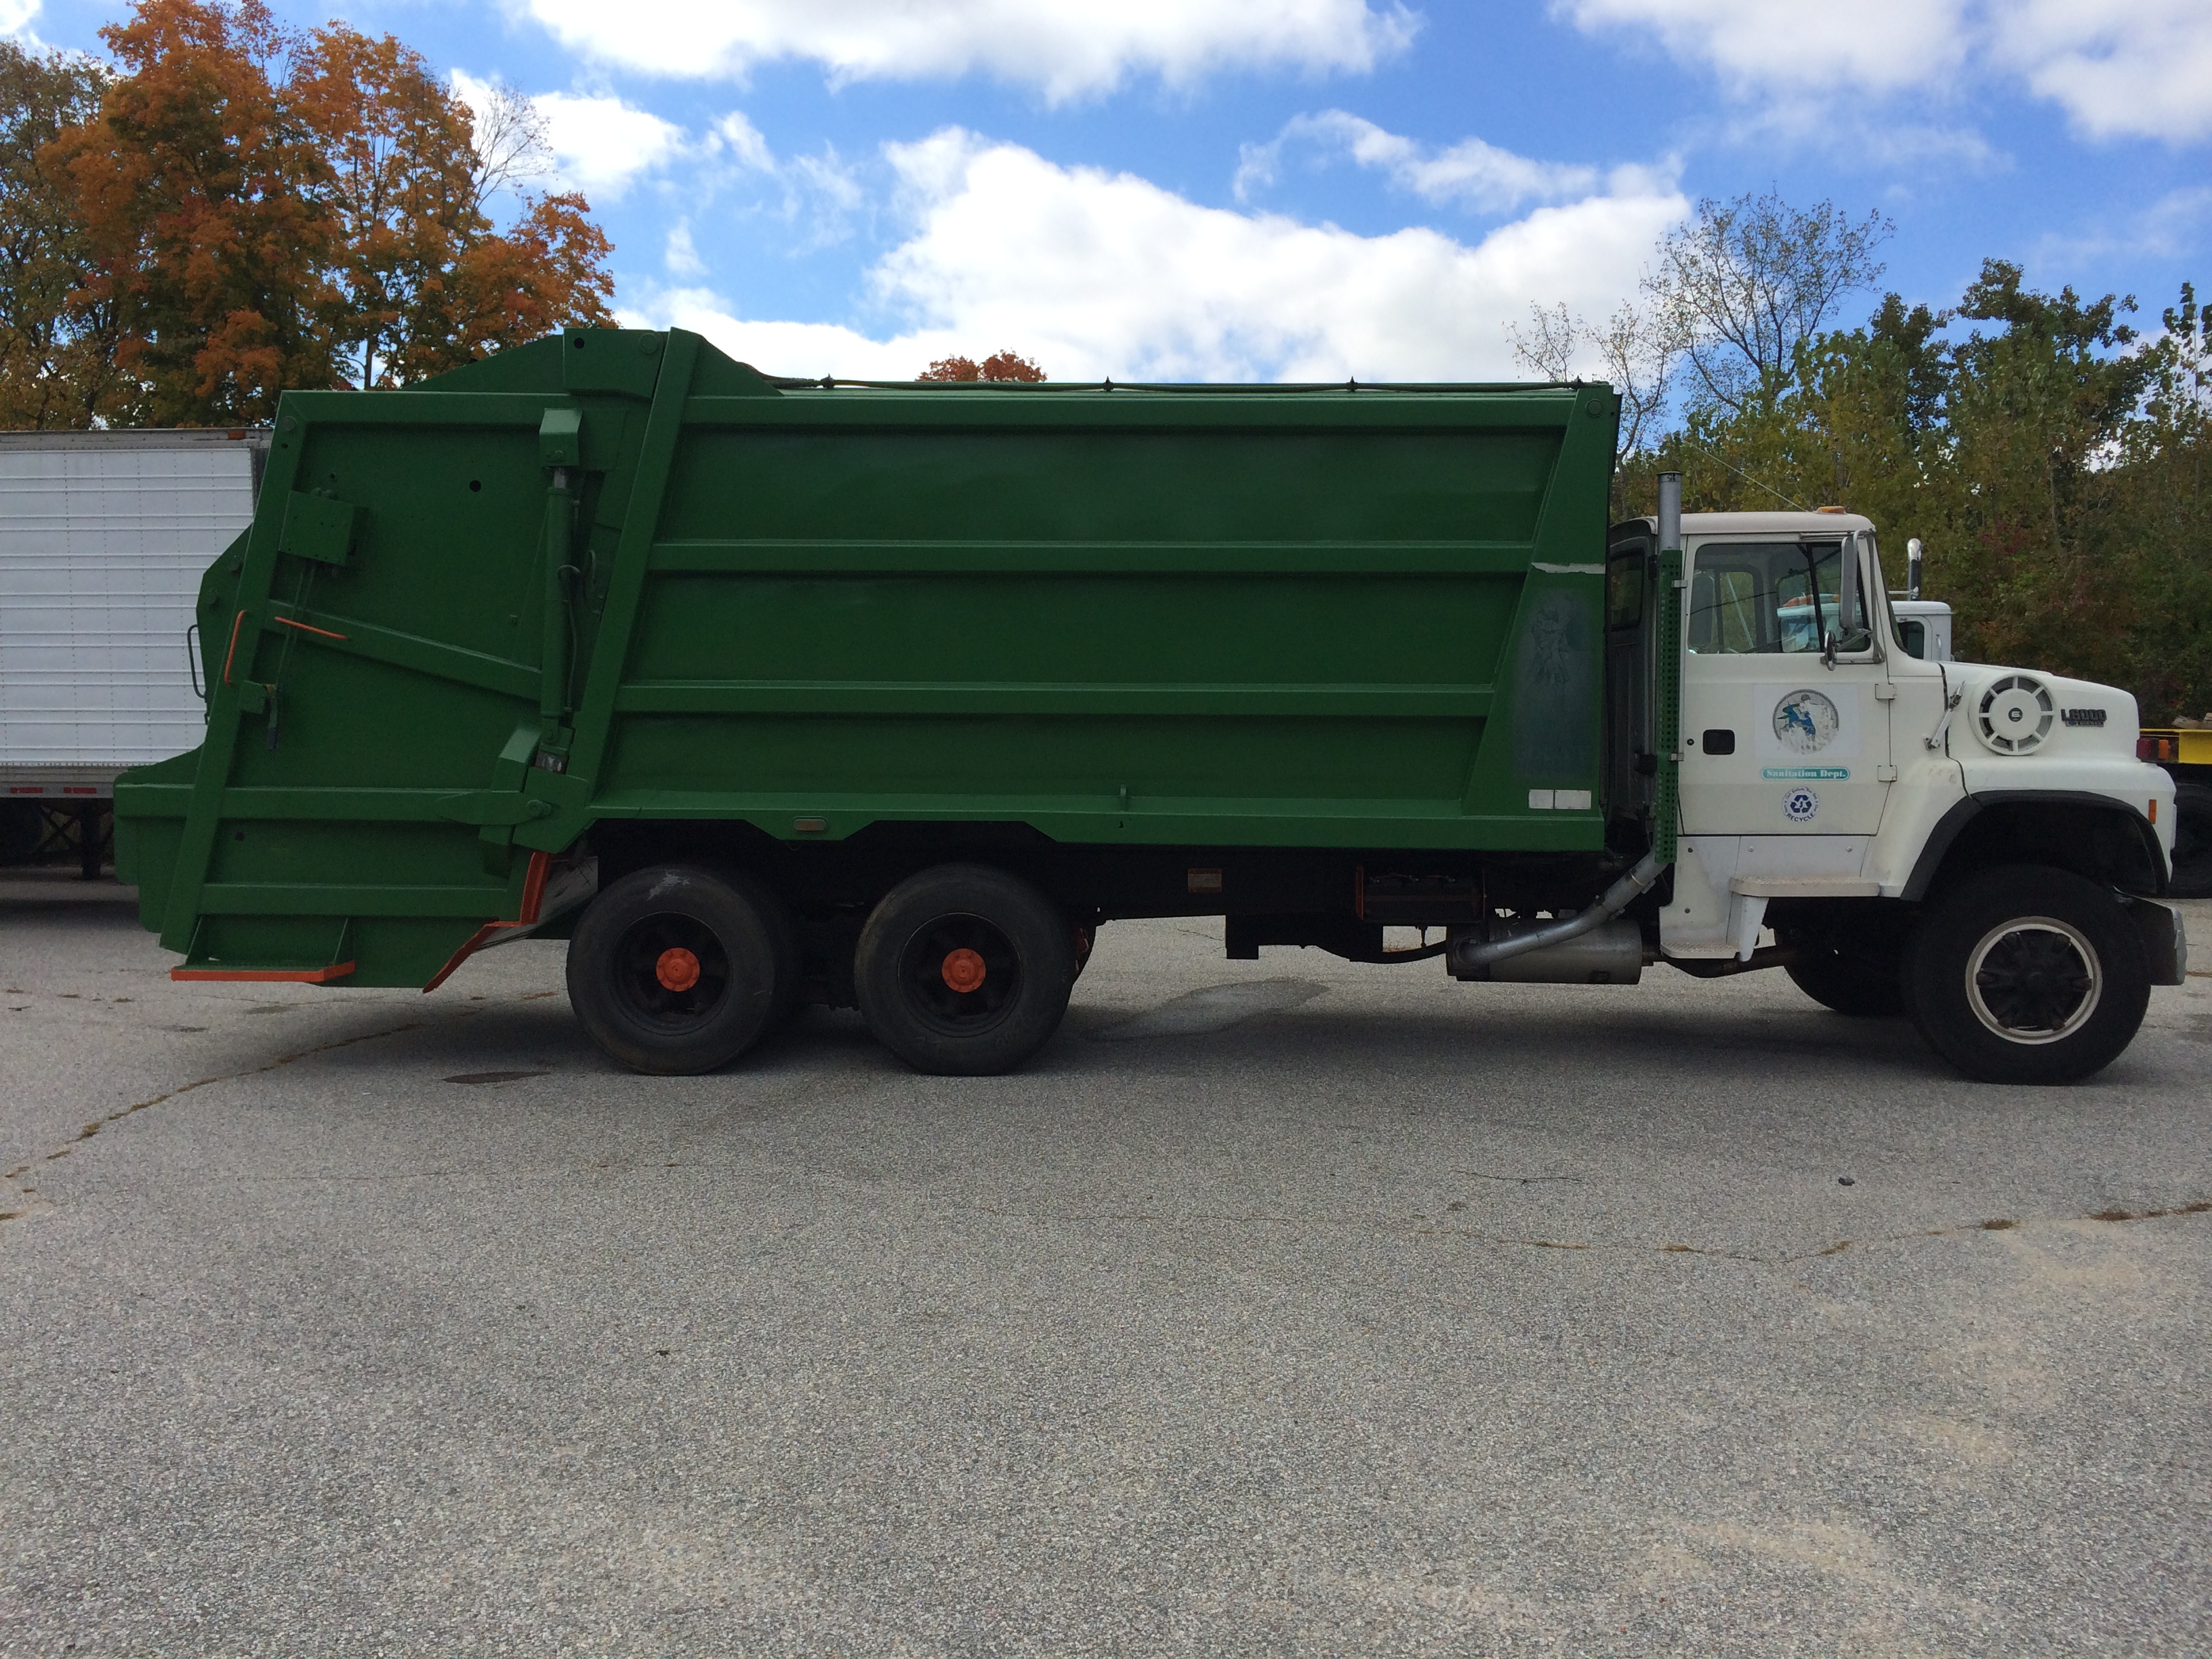 92 ford diesel truck | Oil capacity of a 1992 Ford f  2019-05-05